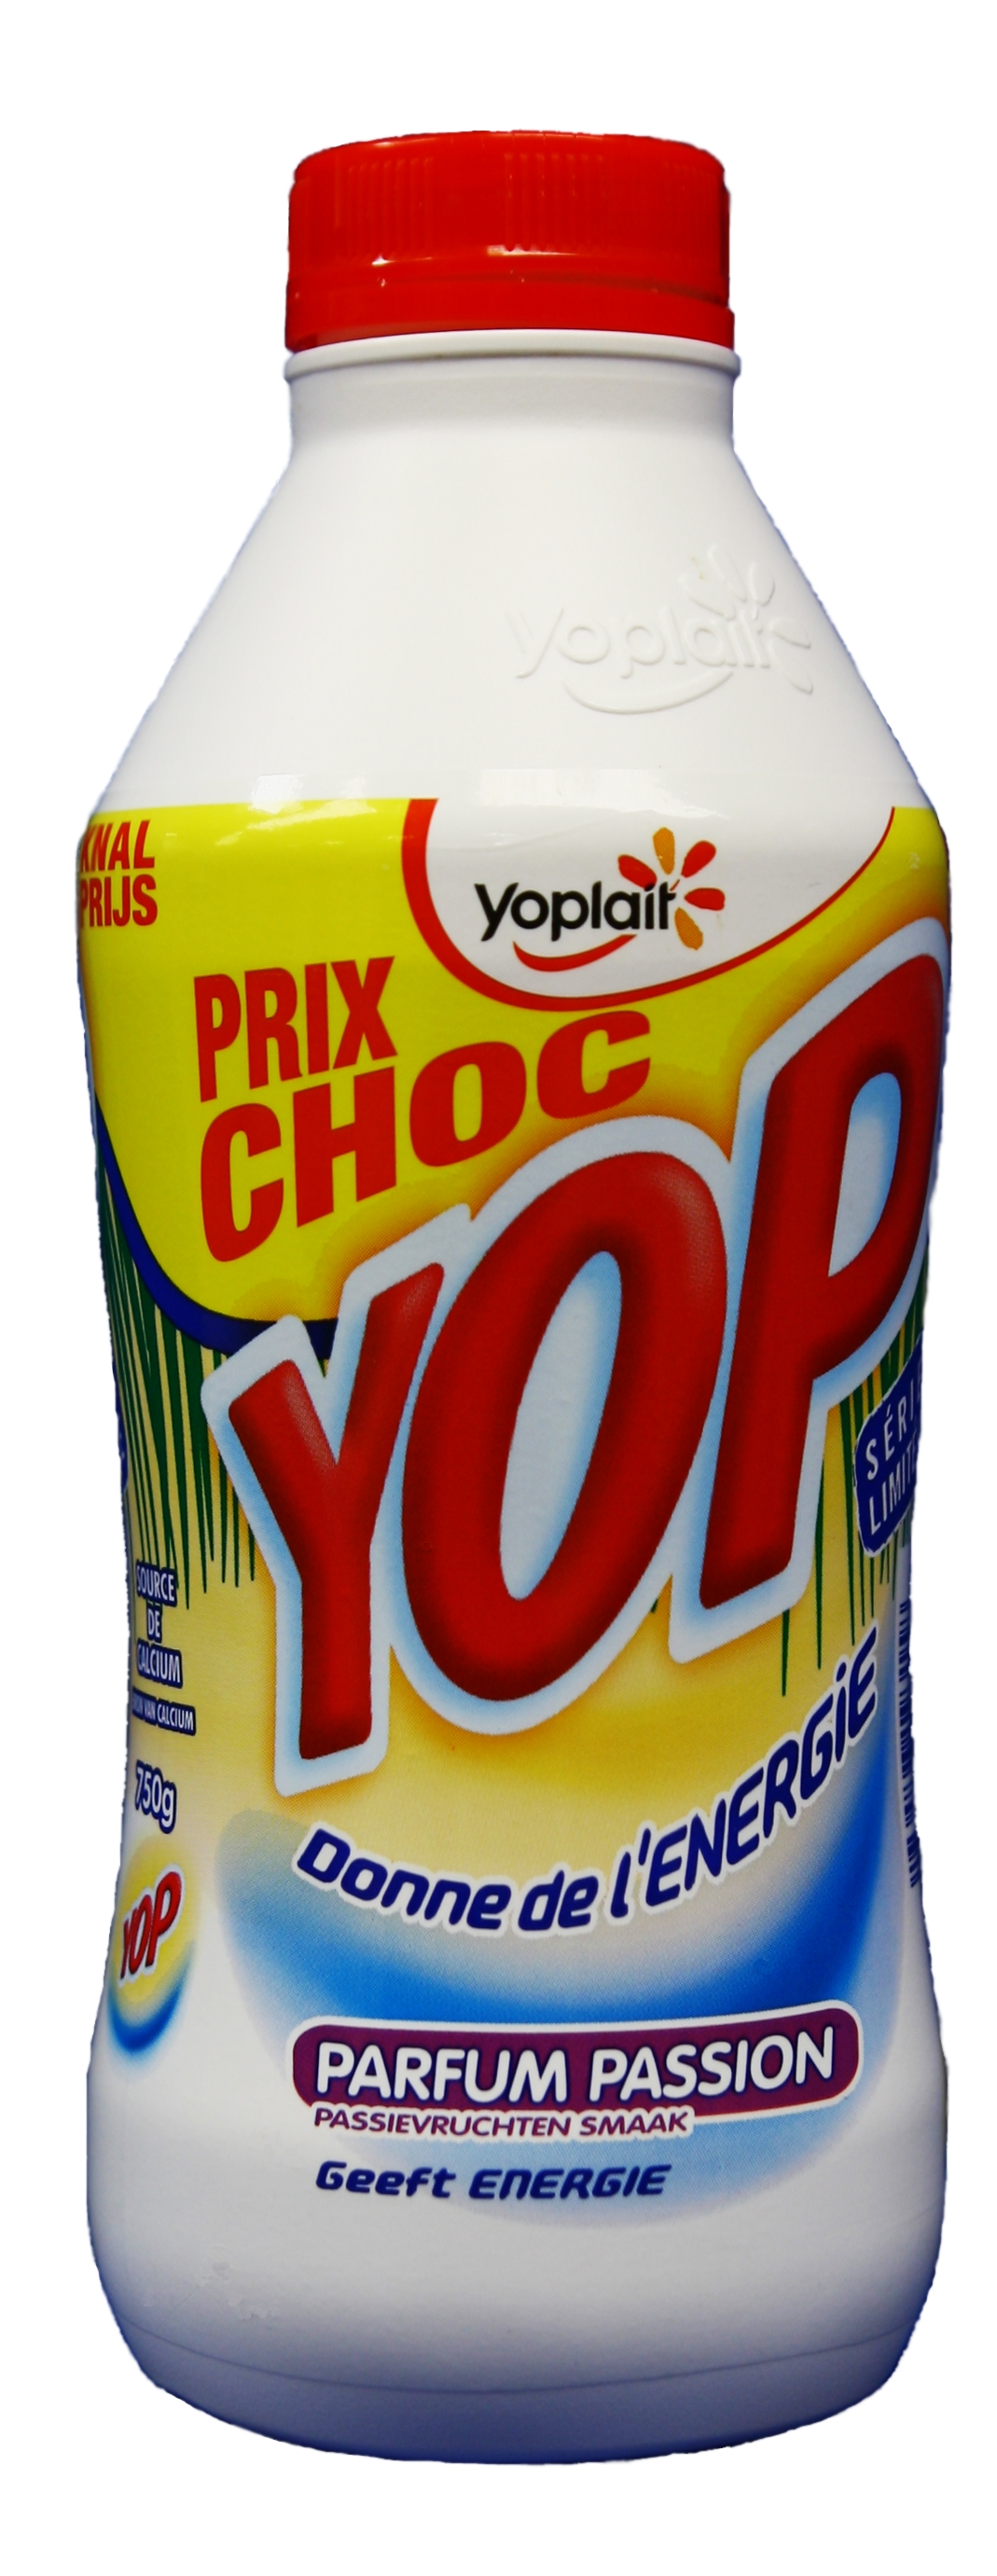 C-FiT Sleeve - Yoplait HDPE Bottle